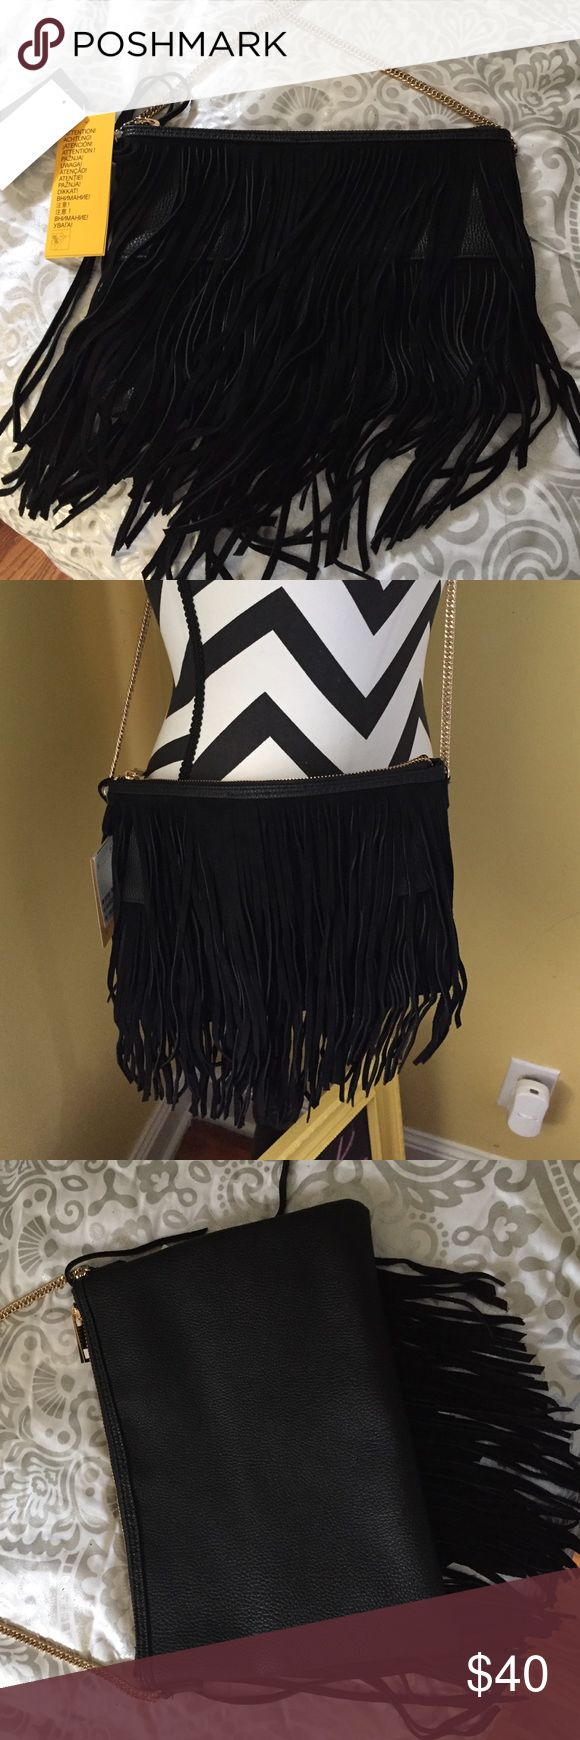 H&M Purse H&M Black purse. New/never used. Excellent condition. Gold hardware. Suede fringes on front. Can be worn as shoulder bag, clutch or Crossbody. H&M Bags Shoulder Bags